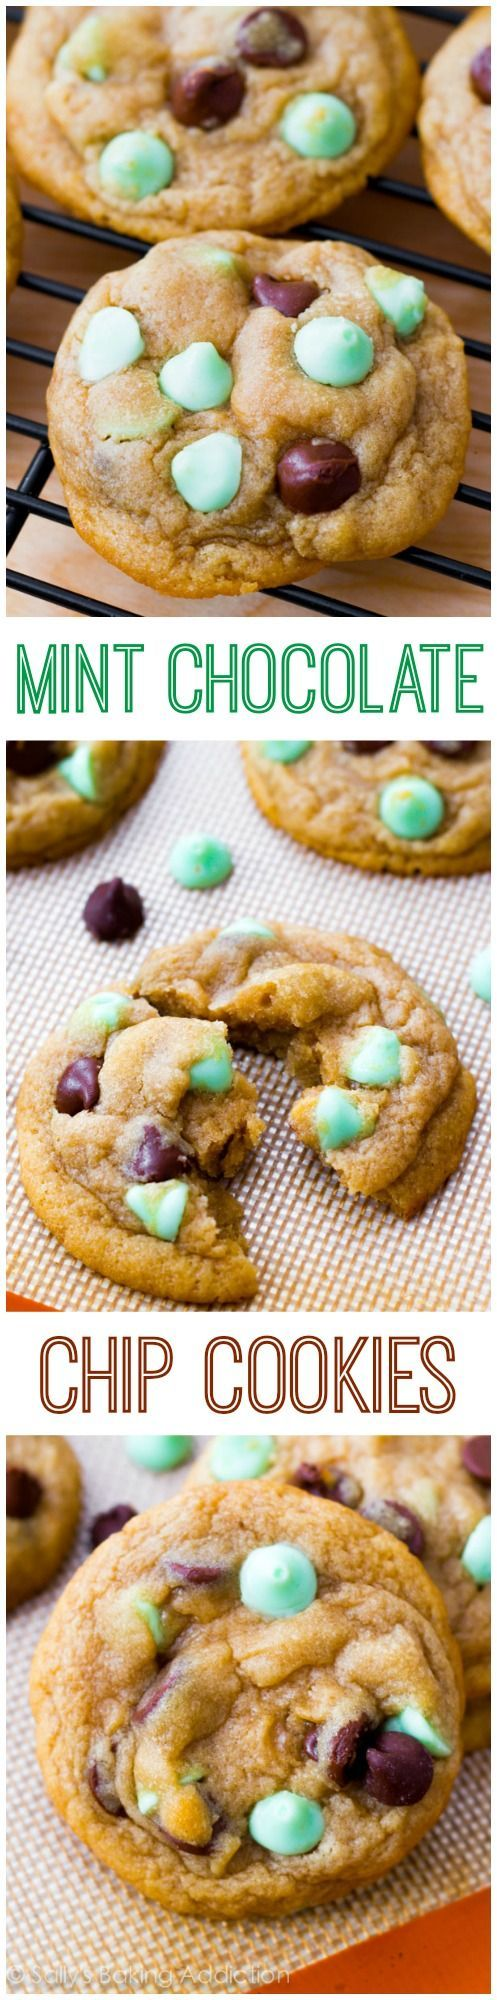 Best 25+ Mint chocolate chip cookies ideas on Pinterest | Andes ...